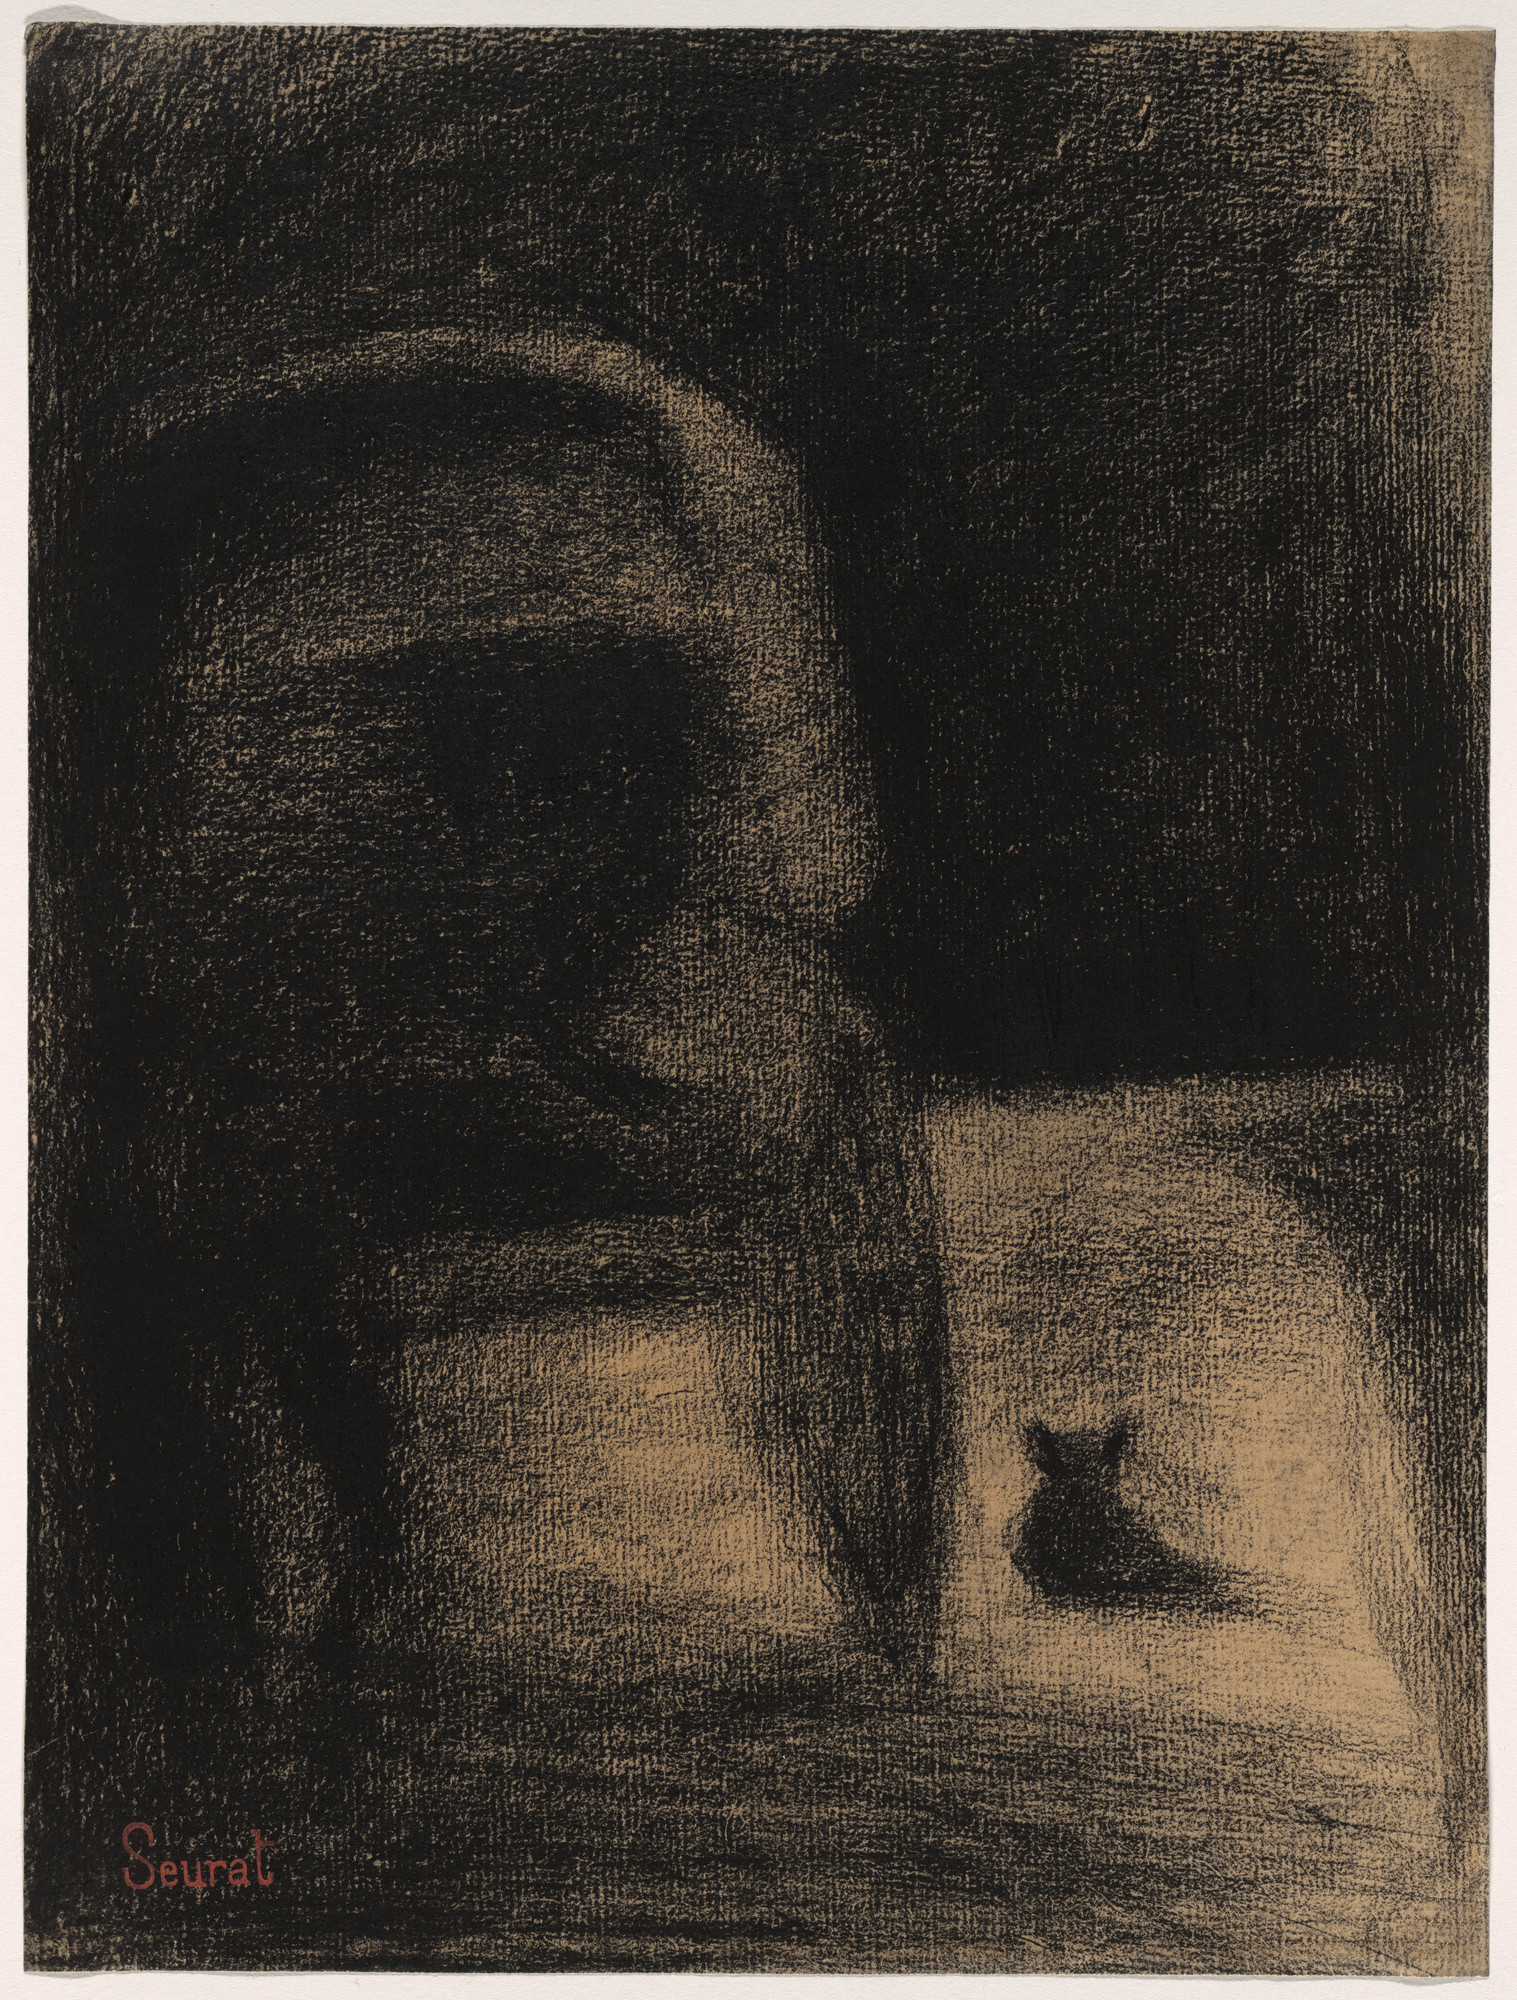 Georges-Pierre Seurat. Carriage and Dog (La Carriole et le chien). c. 1882–84